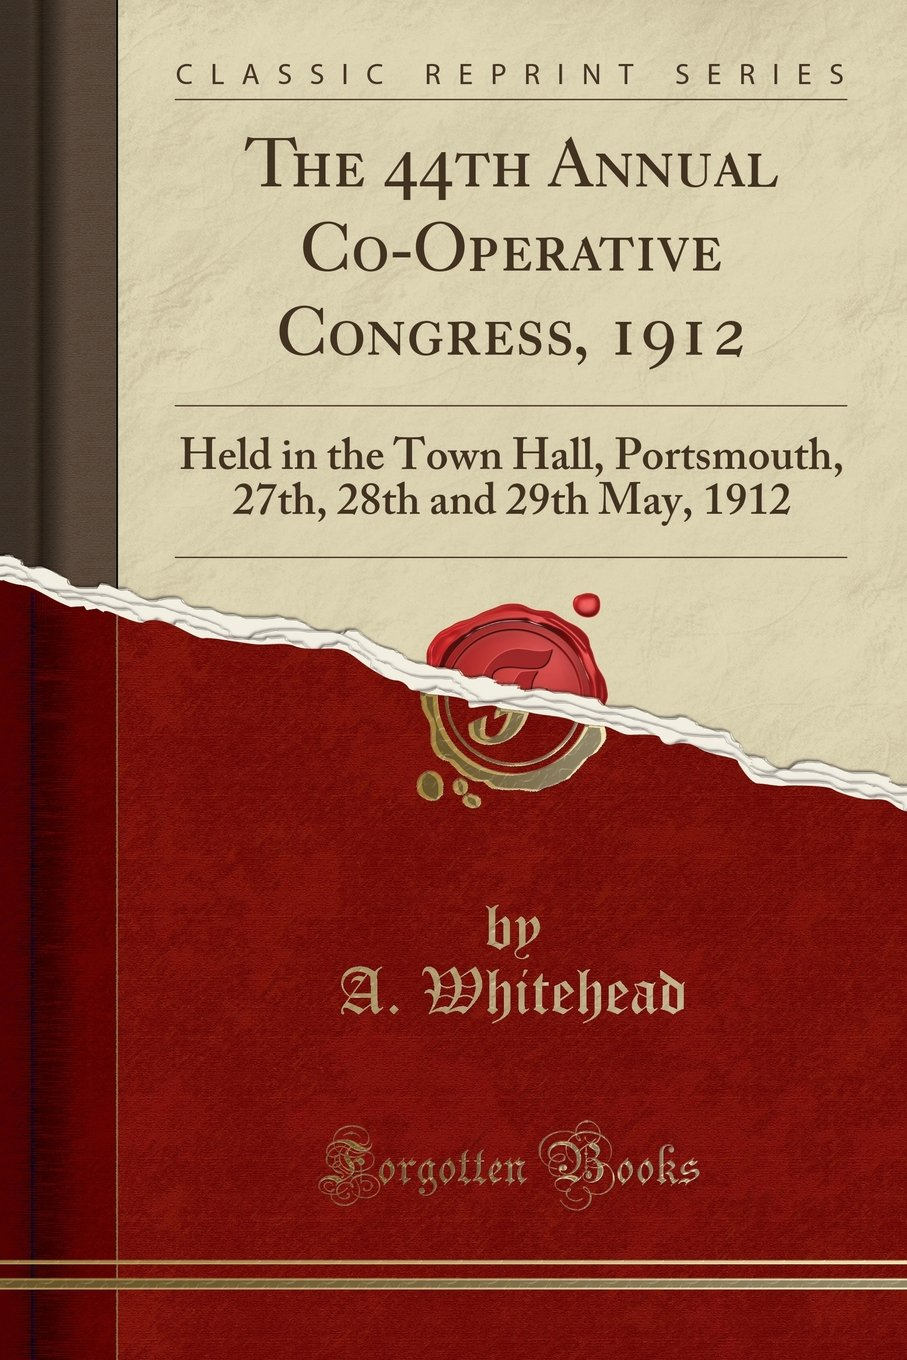 Download The 44th Annual Co-Operative Congress, 1912: Held in the Town Hall, Portsmouth, 27th, 28th and 29th May, 1912 (Classic Reprint) PDF